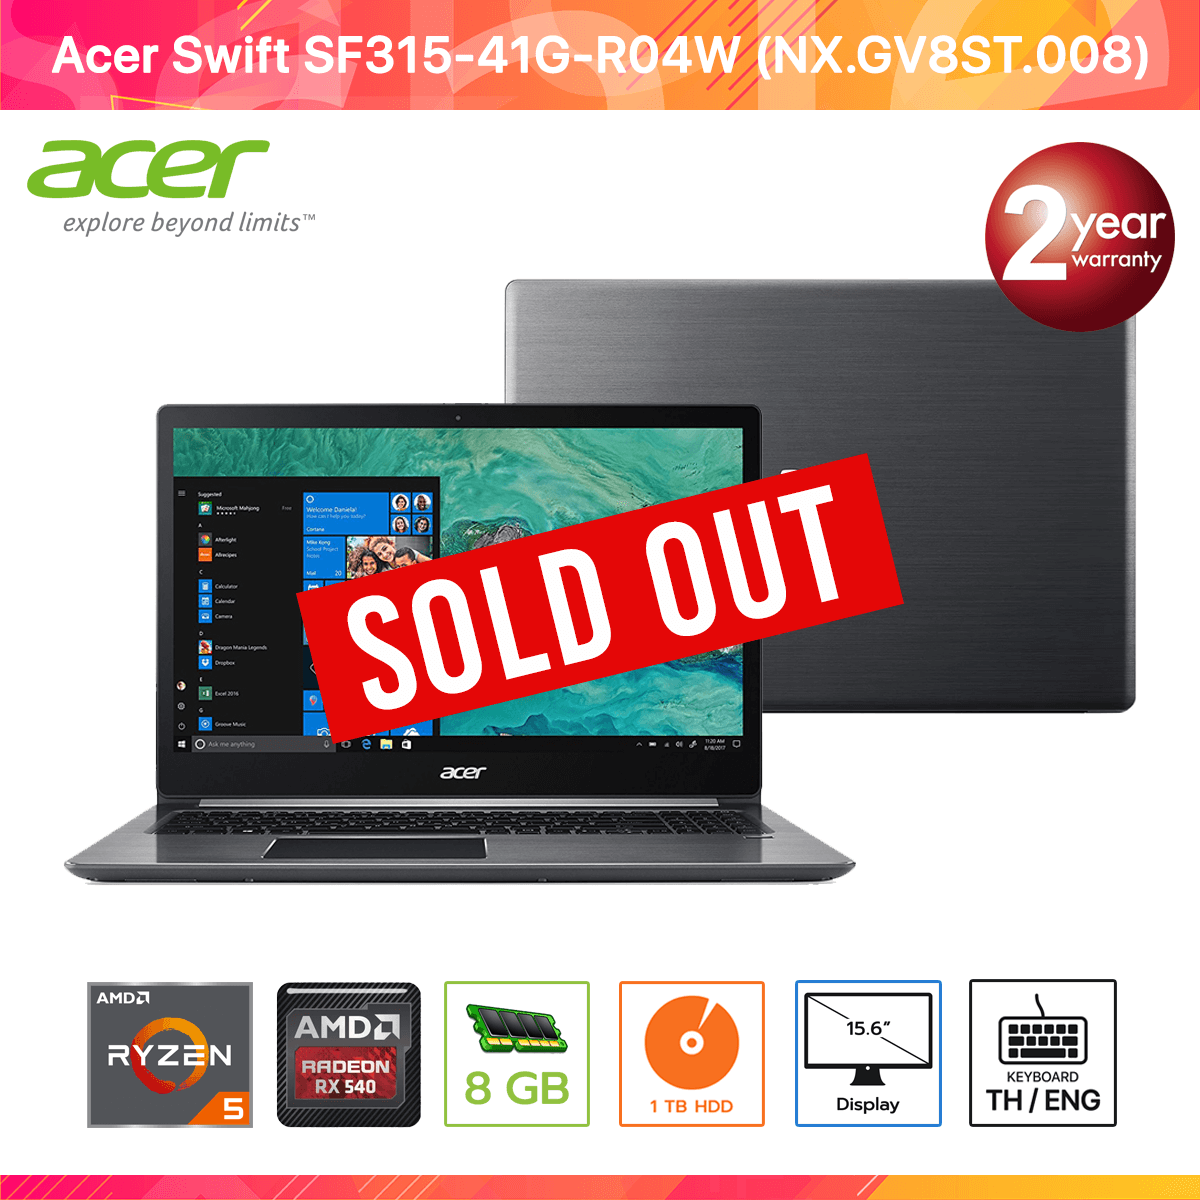 Acer Swift SF315-41G-R04W (NX.GV8ST.008) AMD RYZEN 5 2500U/8GB/1TB/Radeon RX540/15.6/Linux (Steel Gray)